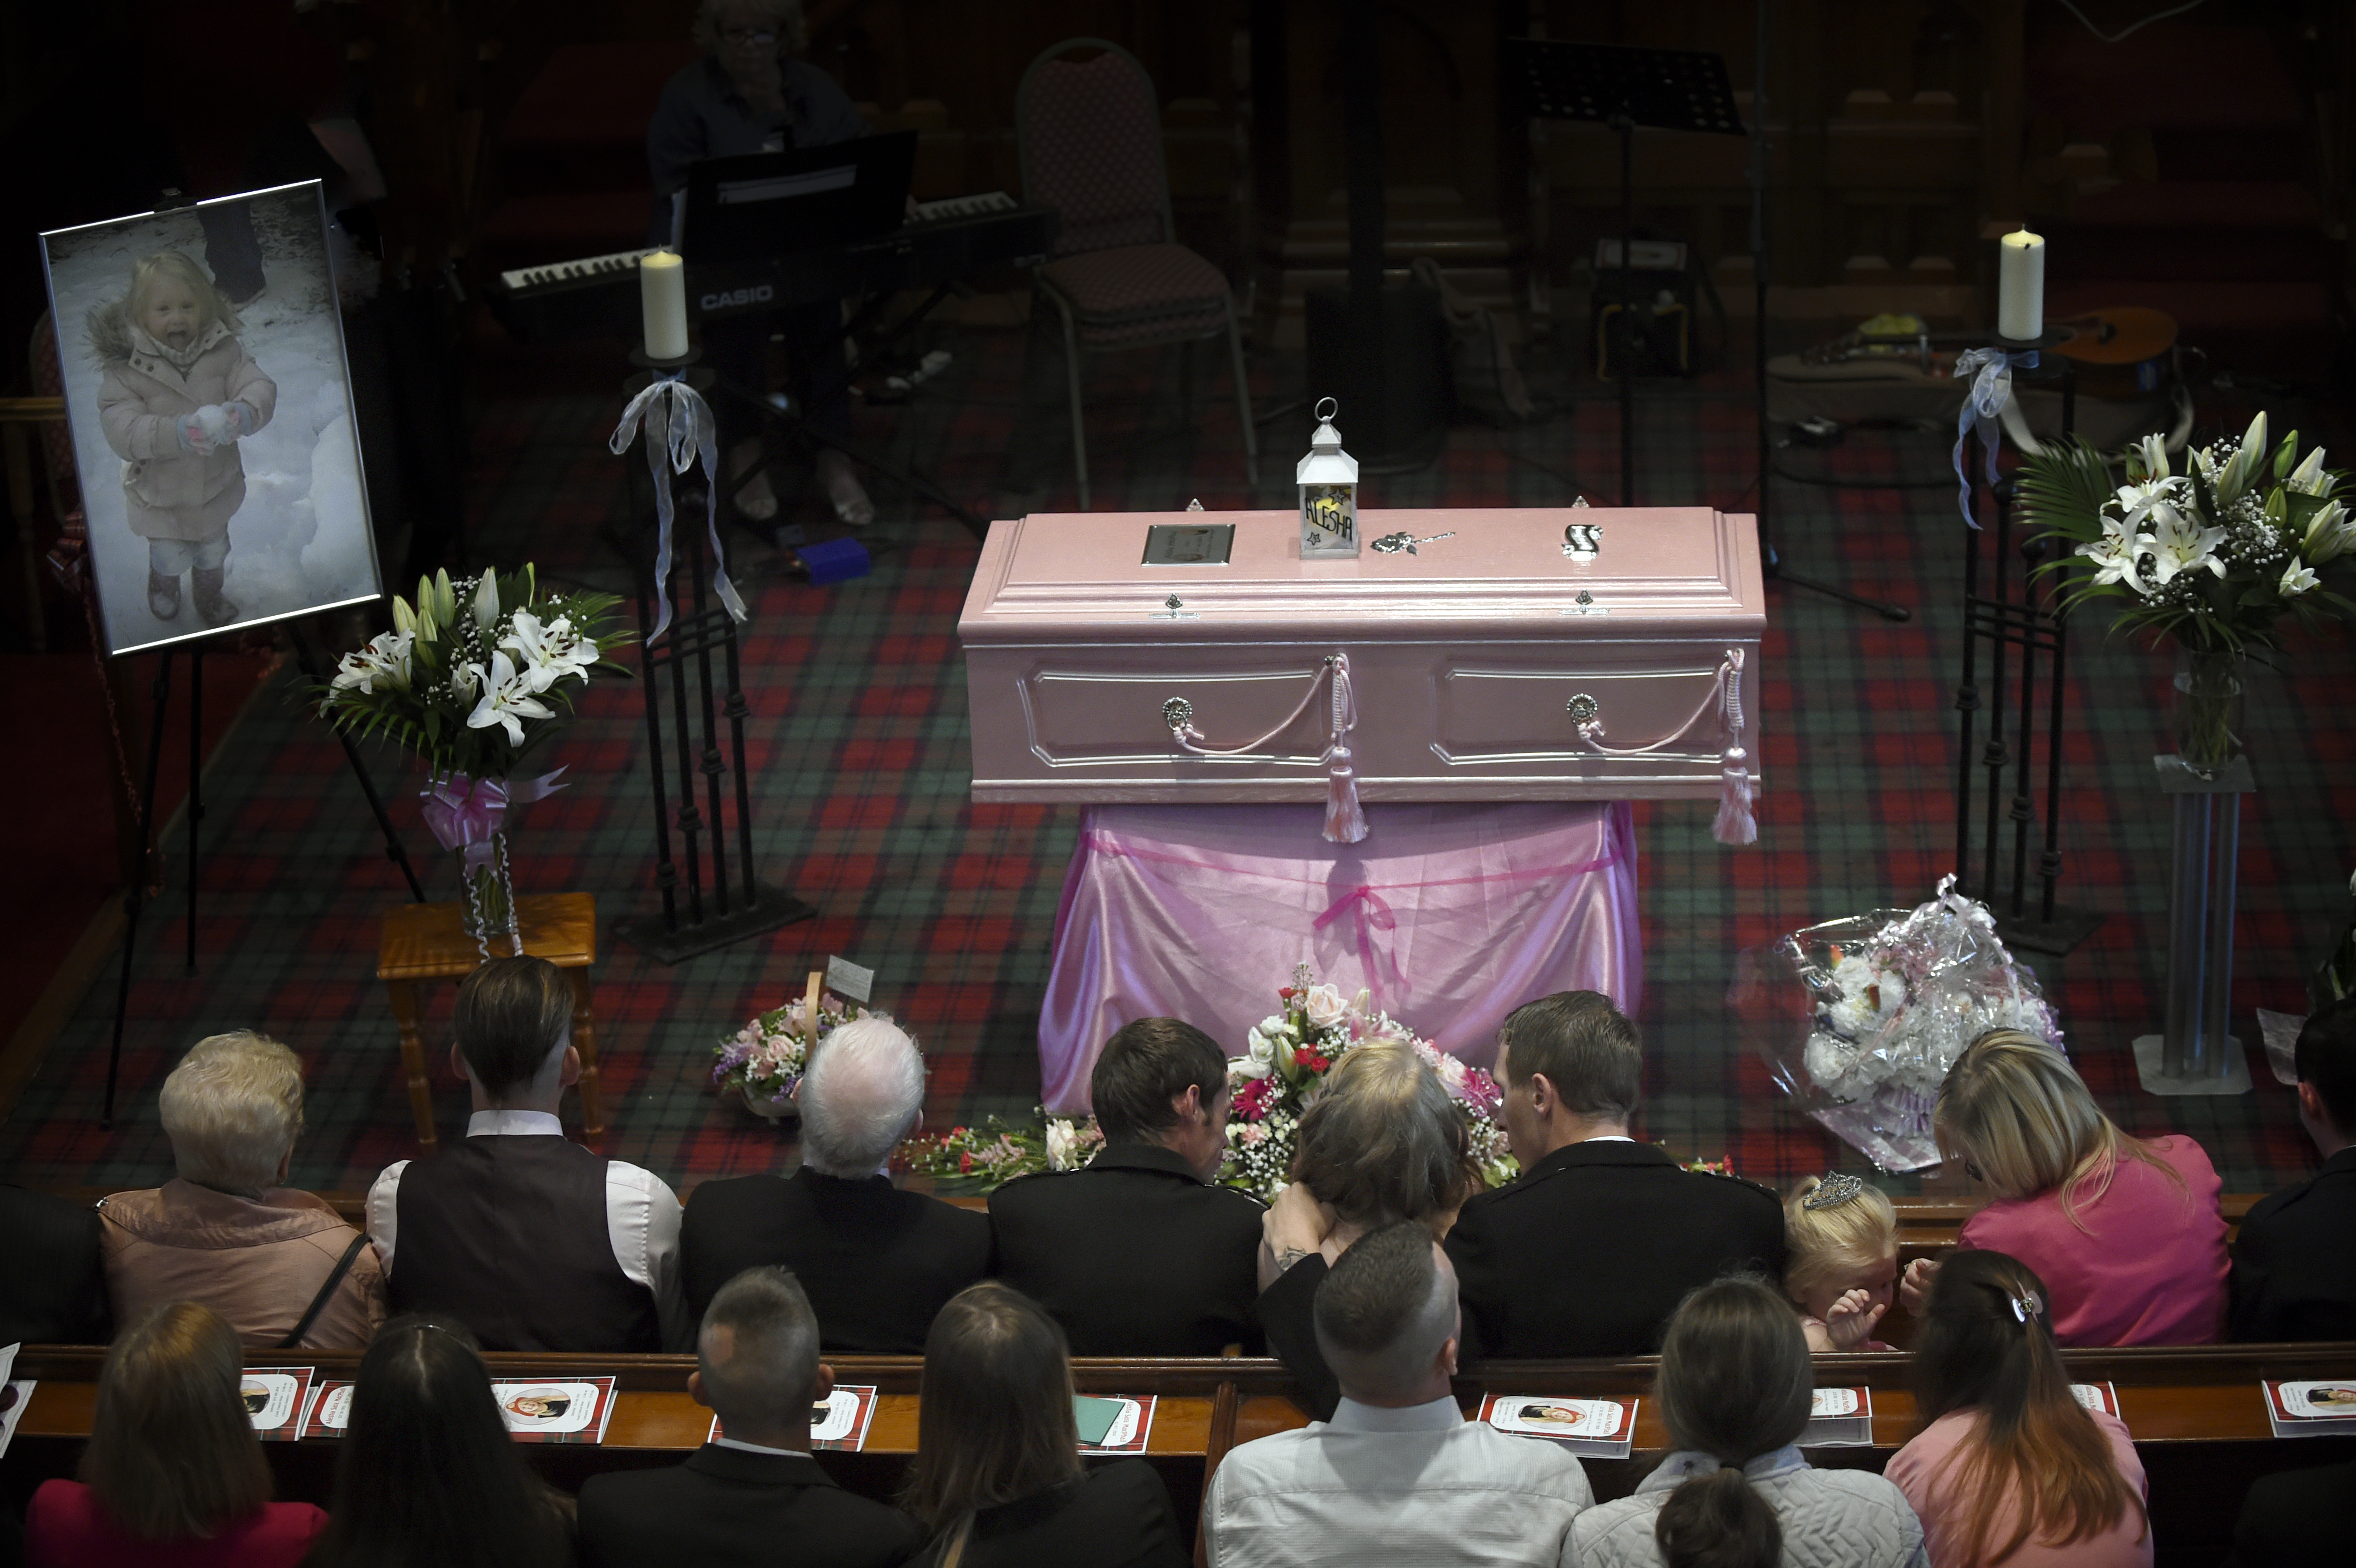 The pink coffin during the funeral of six-year-old Alesha MacPhail at the Coats Funeral Home on July 21, 2018, in Coatbridge, Scotland. (Getty Images)